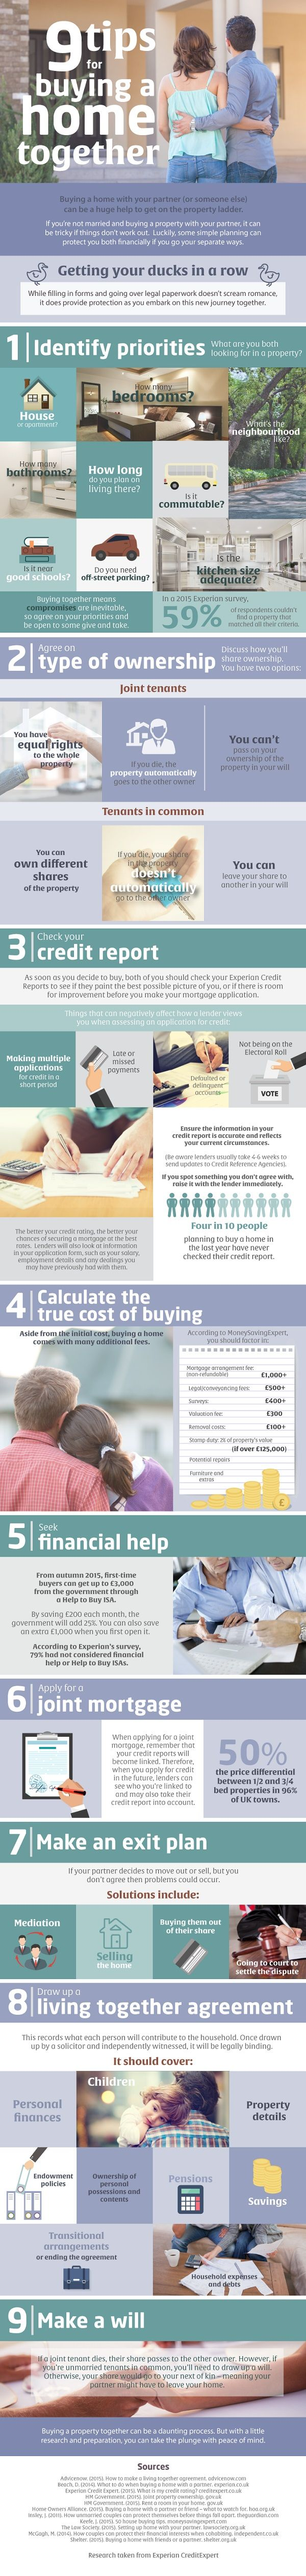 9 Tips For Buying A Home Together #infographic #Home #RealEstate